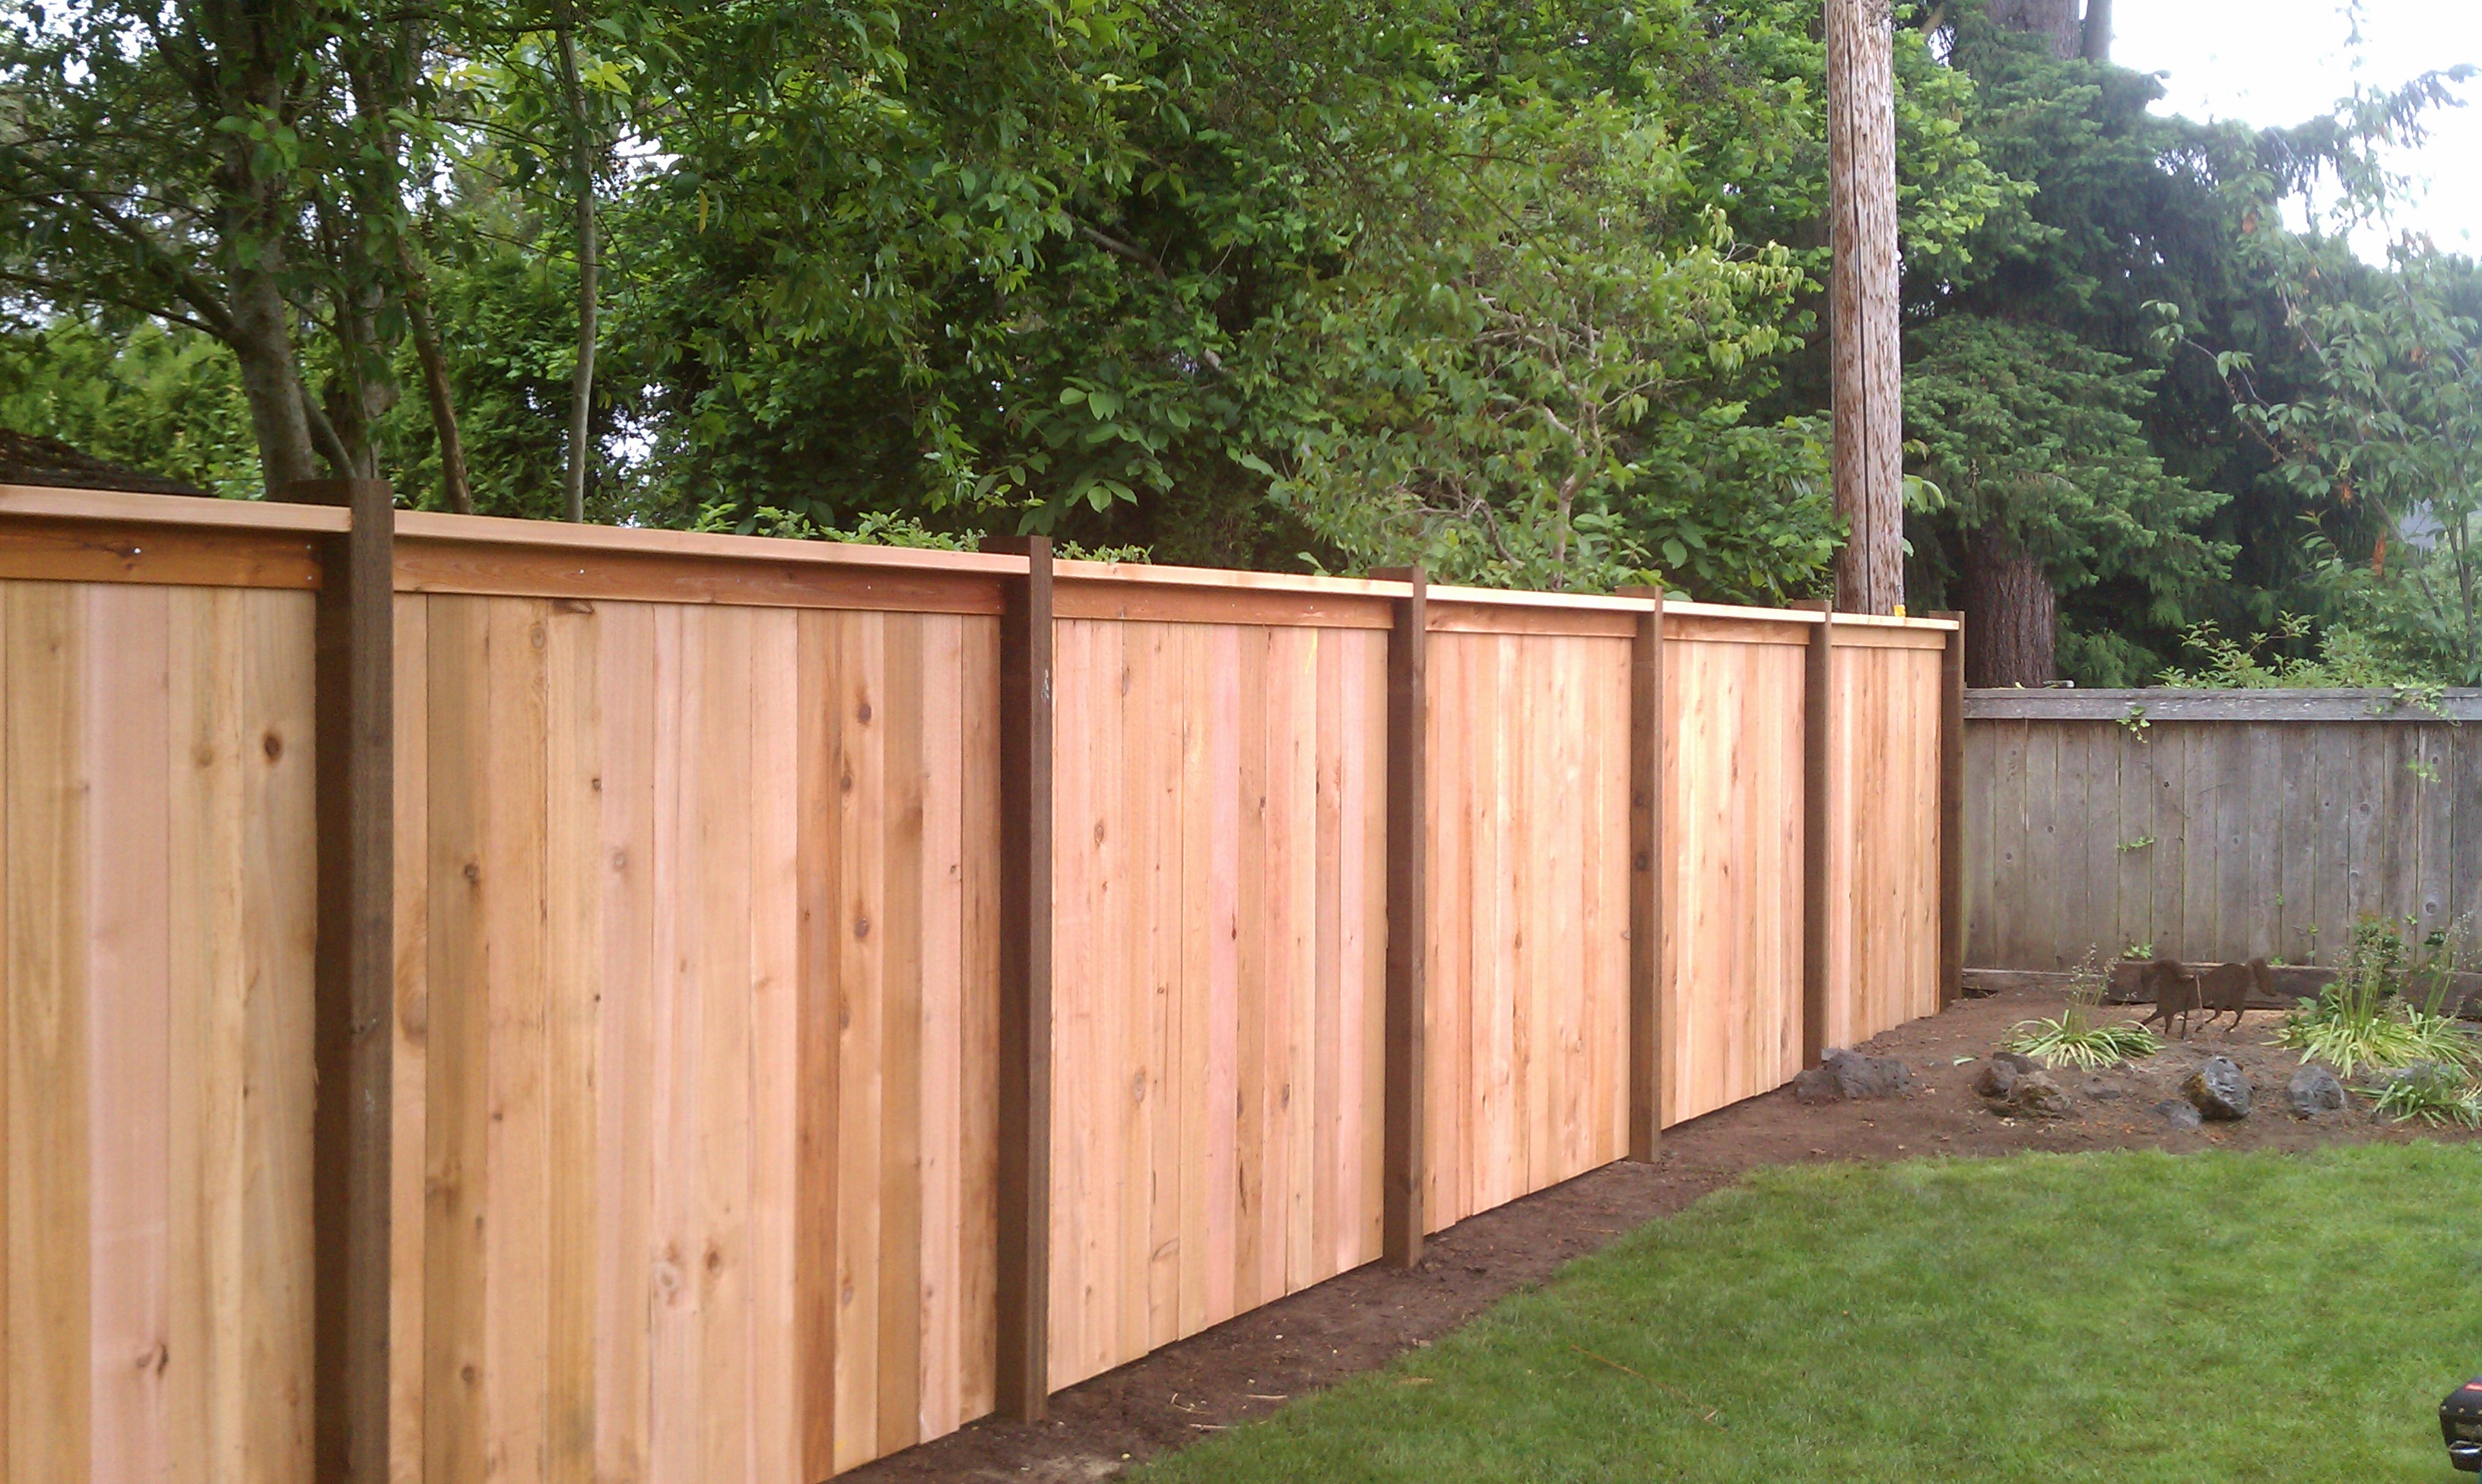 Fence Contractor Eugene Or Fence Construction Eugene